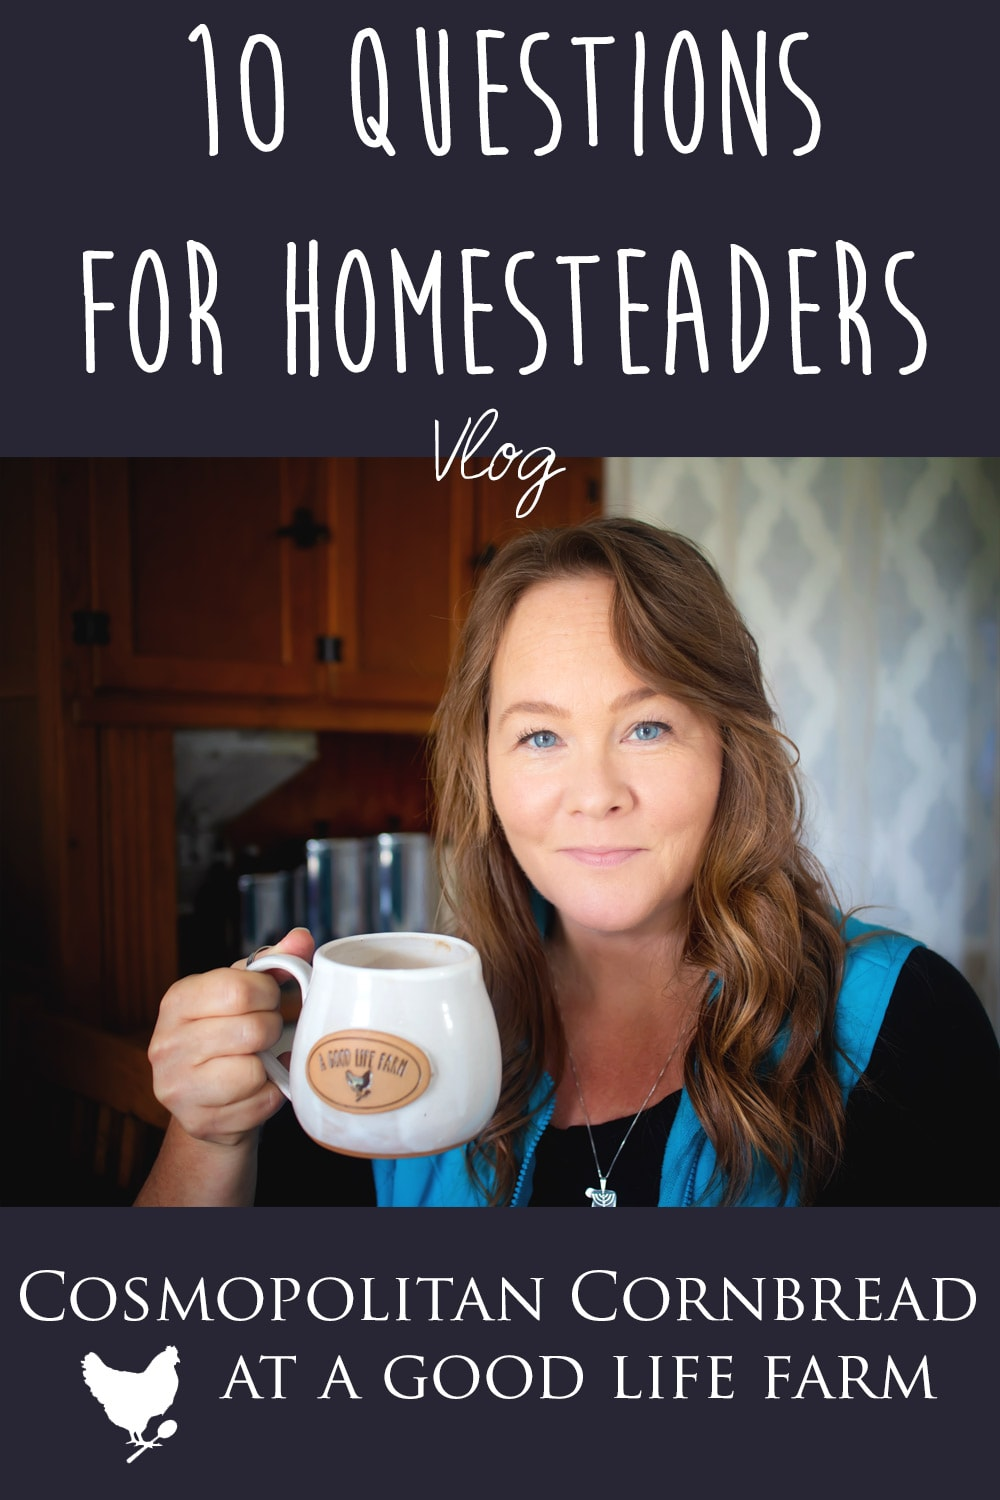 "I was tagged in the ""10 Questions for Homesteaders"" tag by another channel, the Providence Farmstead. So I sat down with a cup of coffee and answered the homesteading questions in this little Q&A."